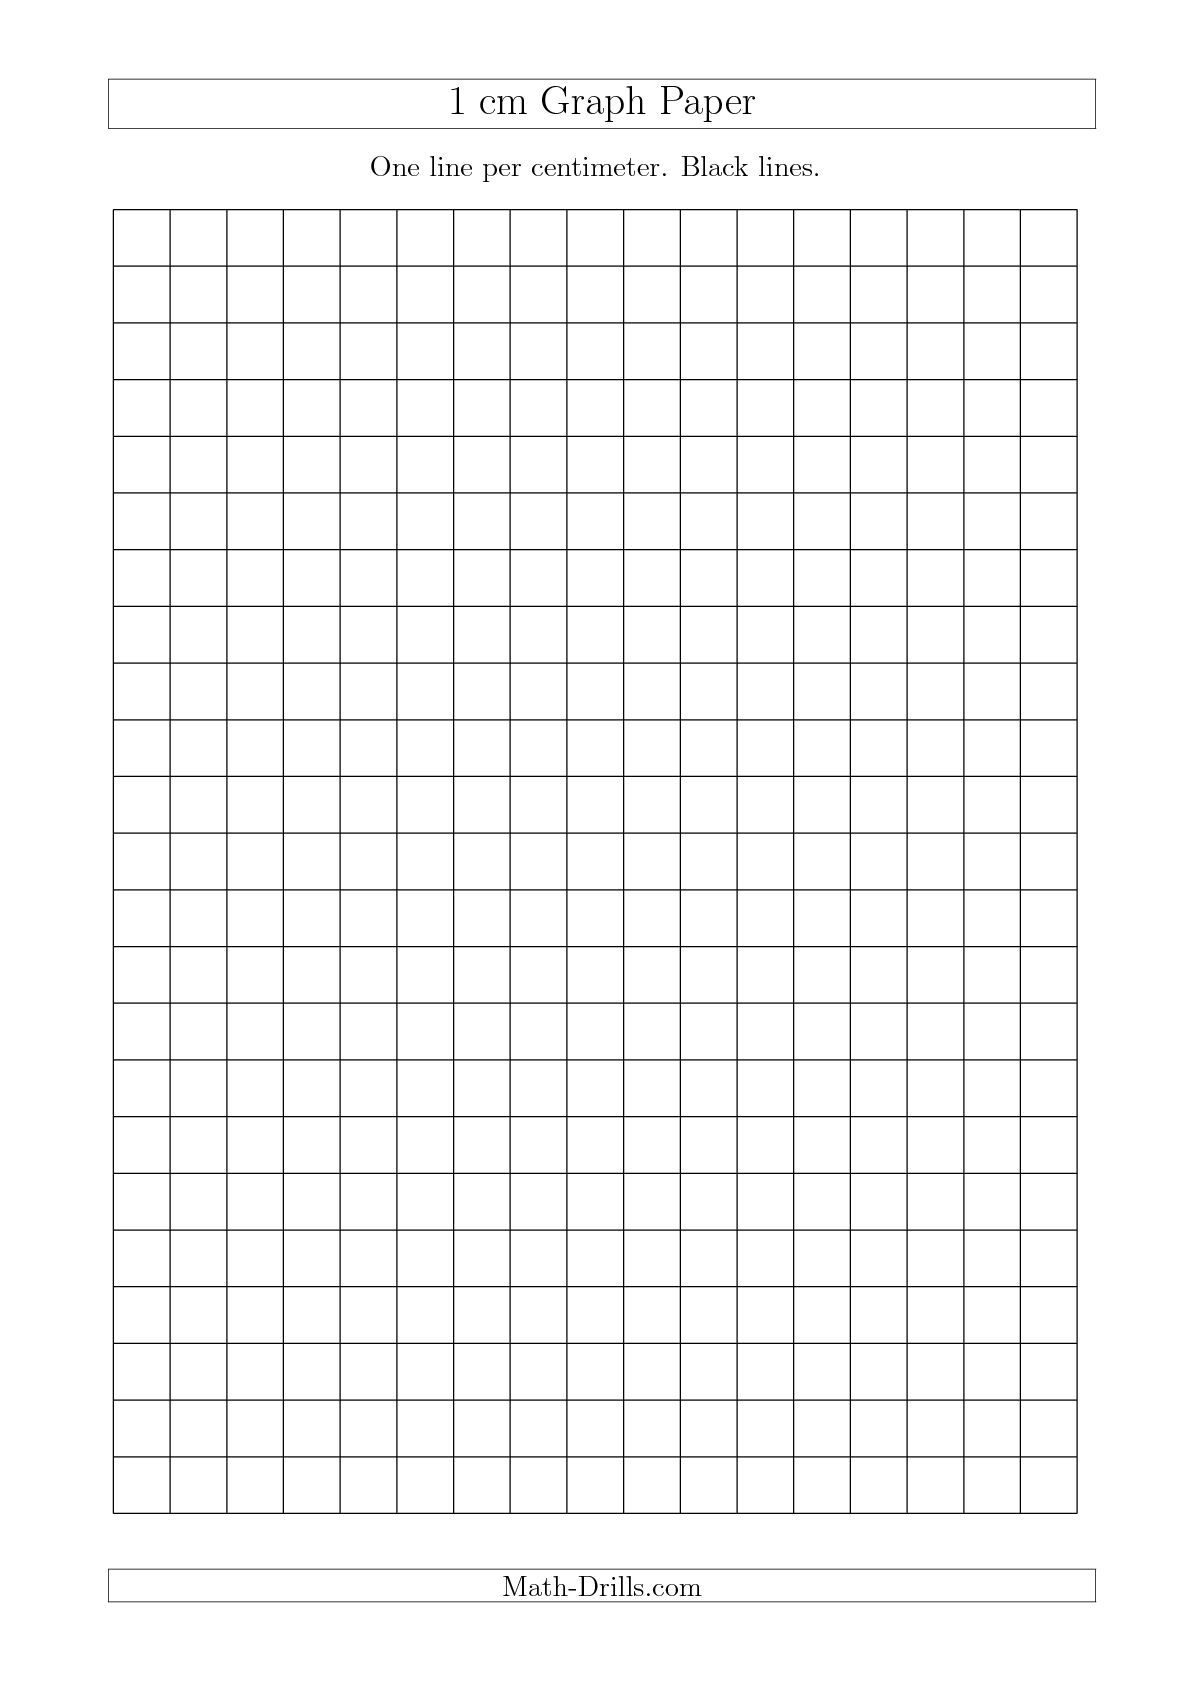 worksheet Graph Paper With Numbers 1 cm graph paper with black lines a4 size a math worksheet worksheet